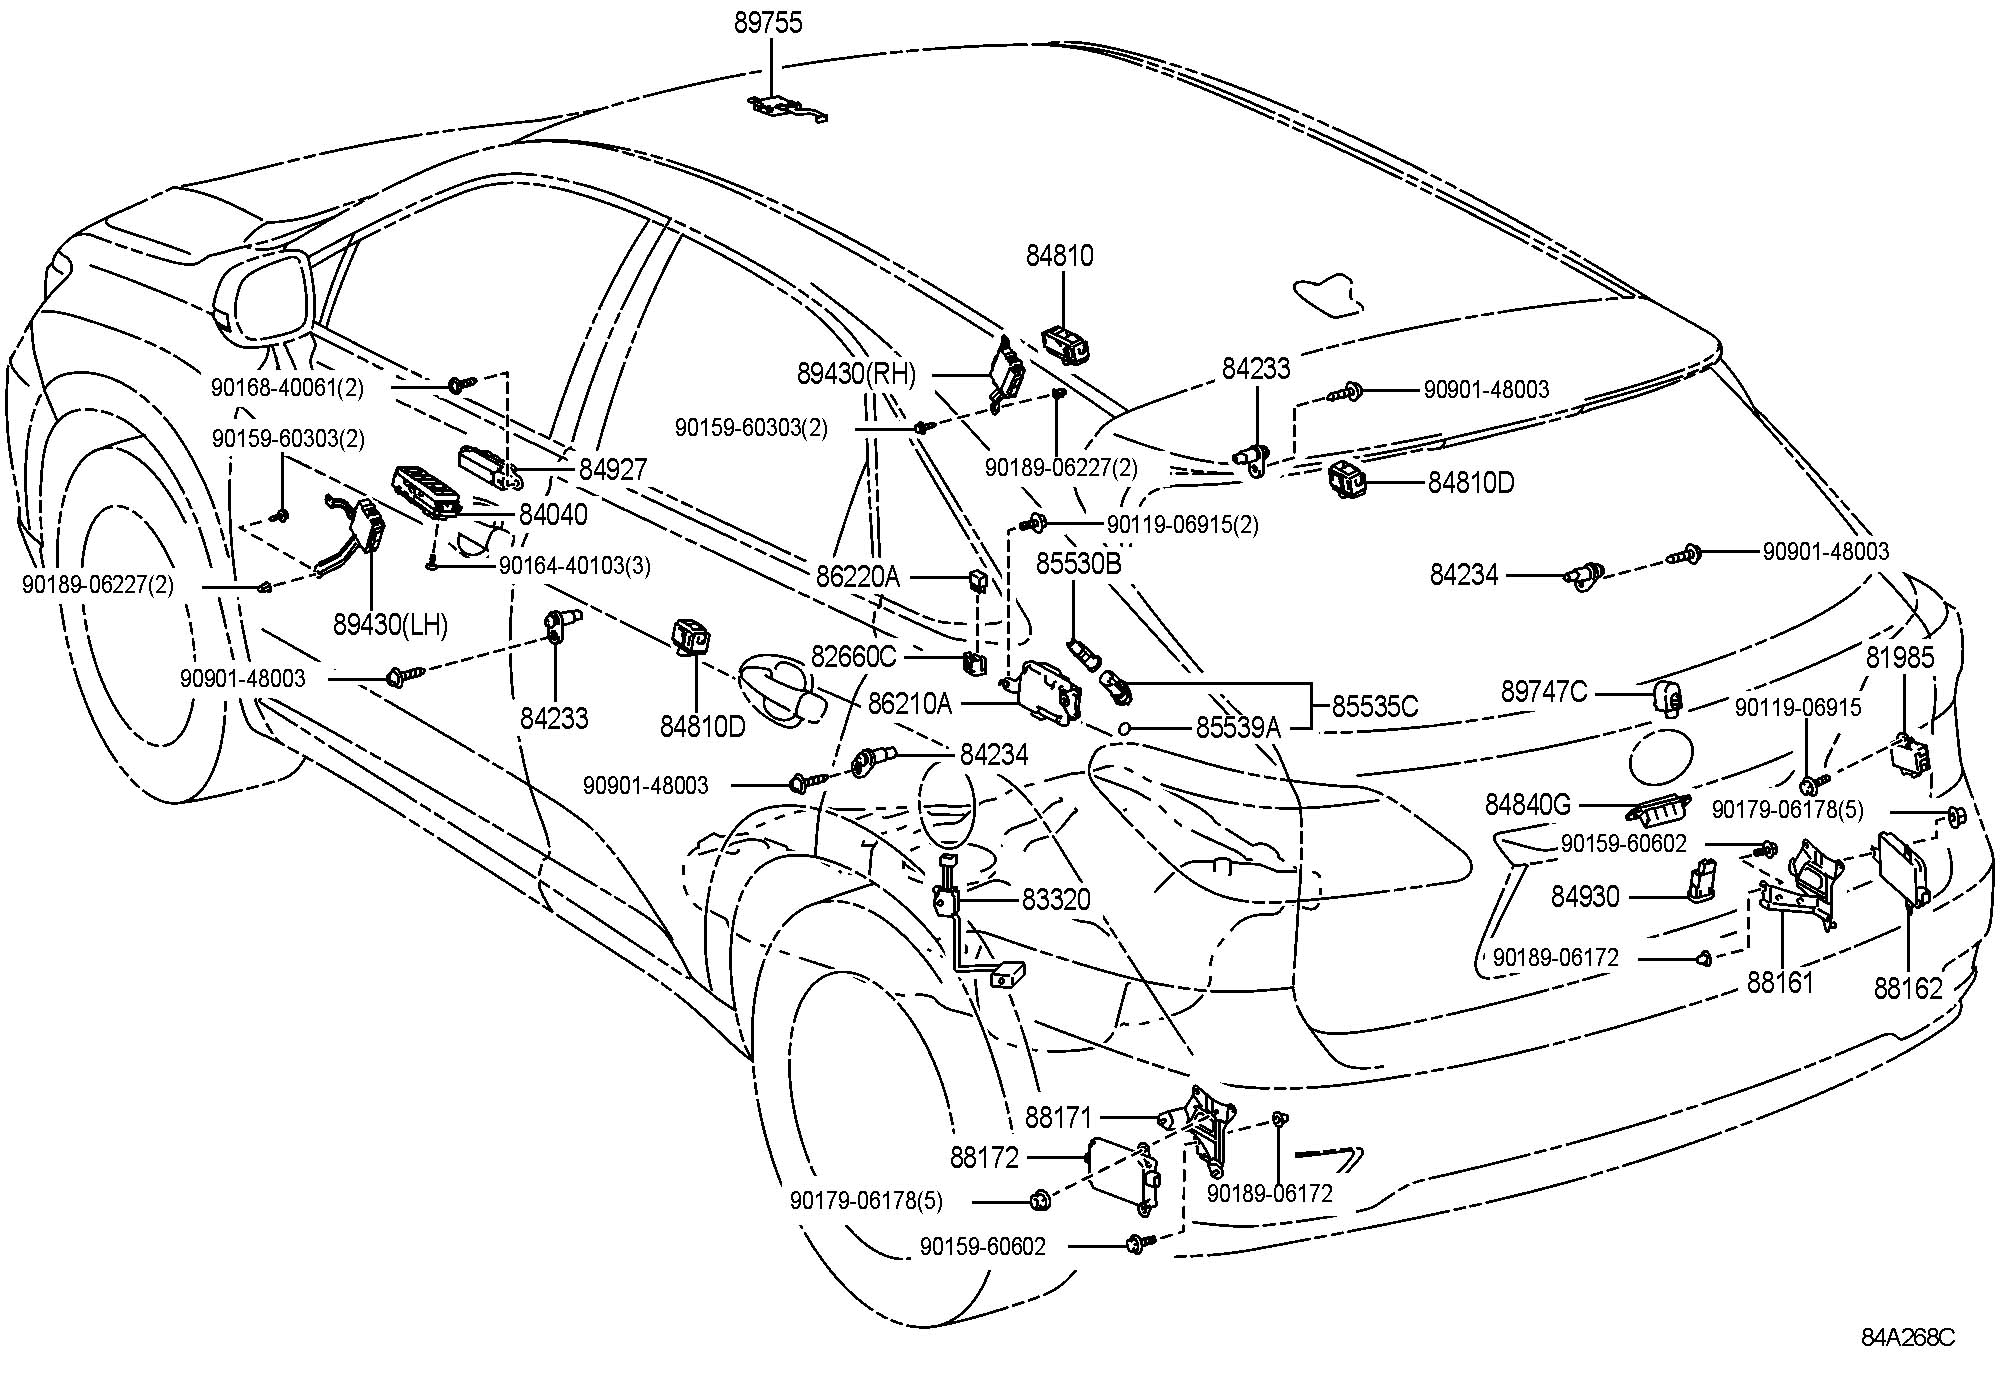 Lexus Gx Wiring Diagram Detailed Schematic Diagrams 2000 Acura Rl Fuse Box Photos For Help Your Rx 350 Parts Basic U2022 Gx470